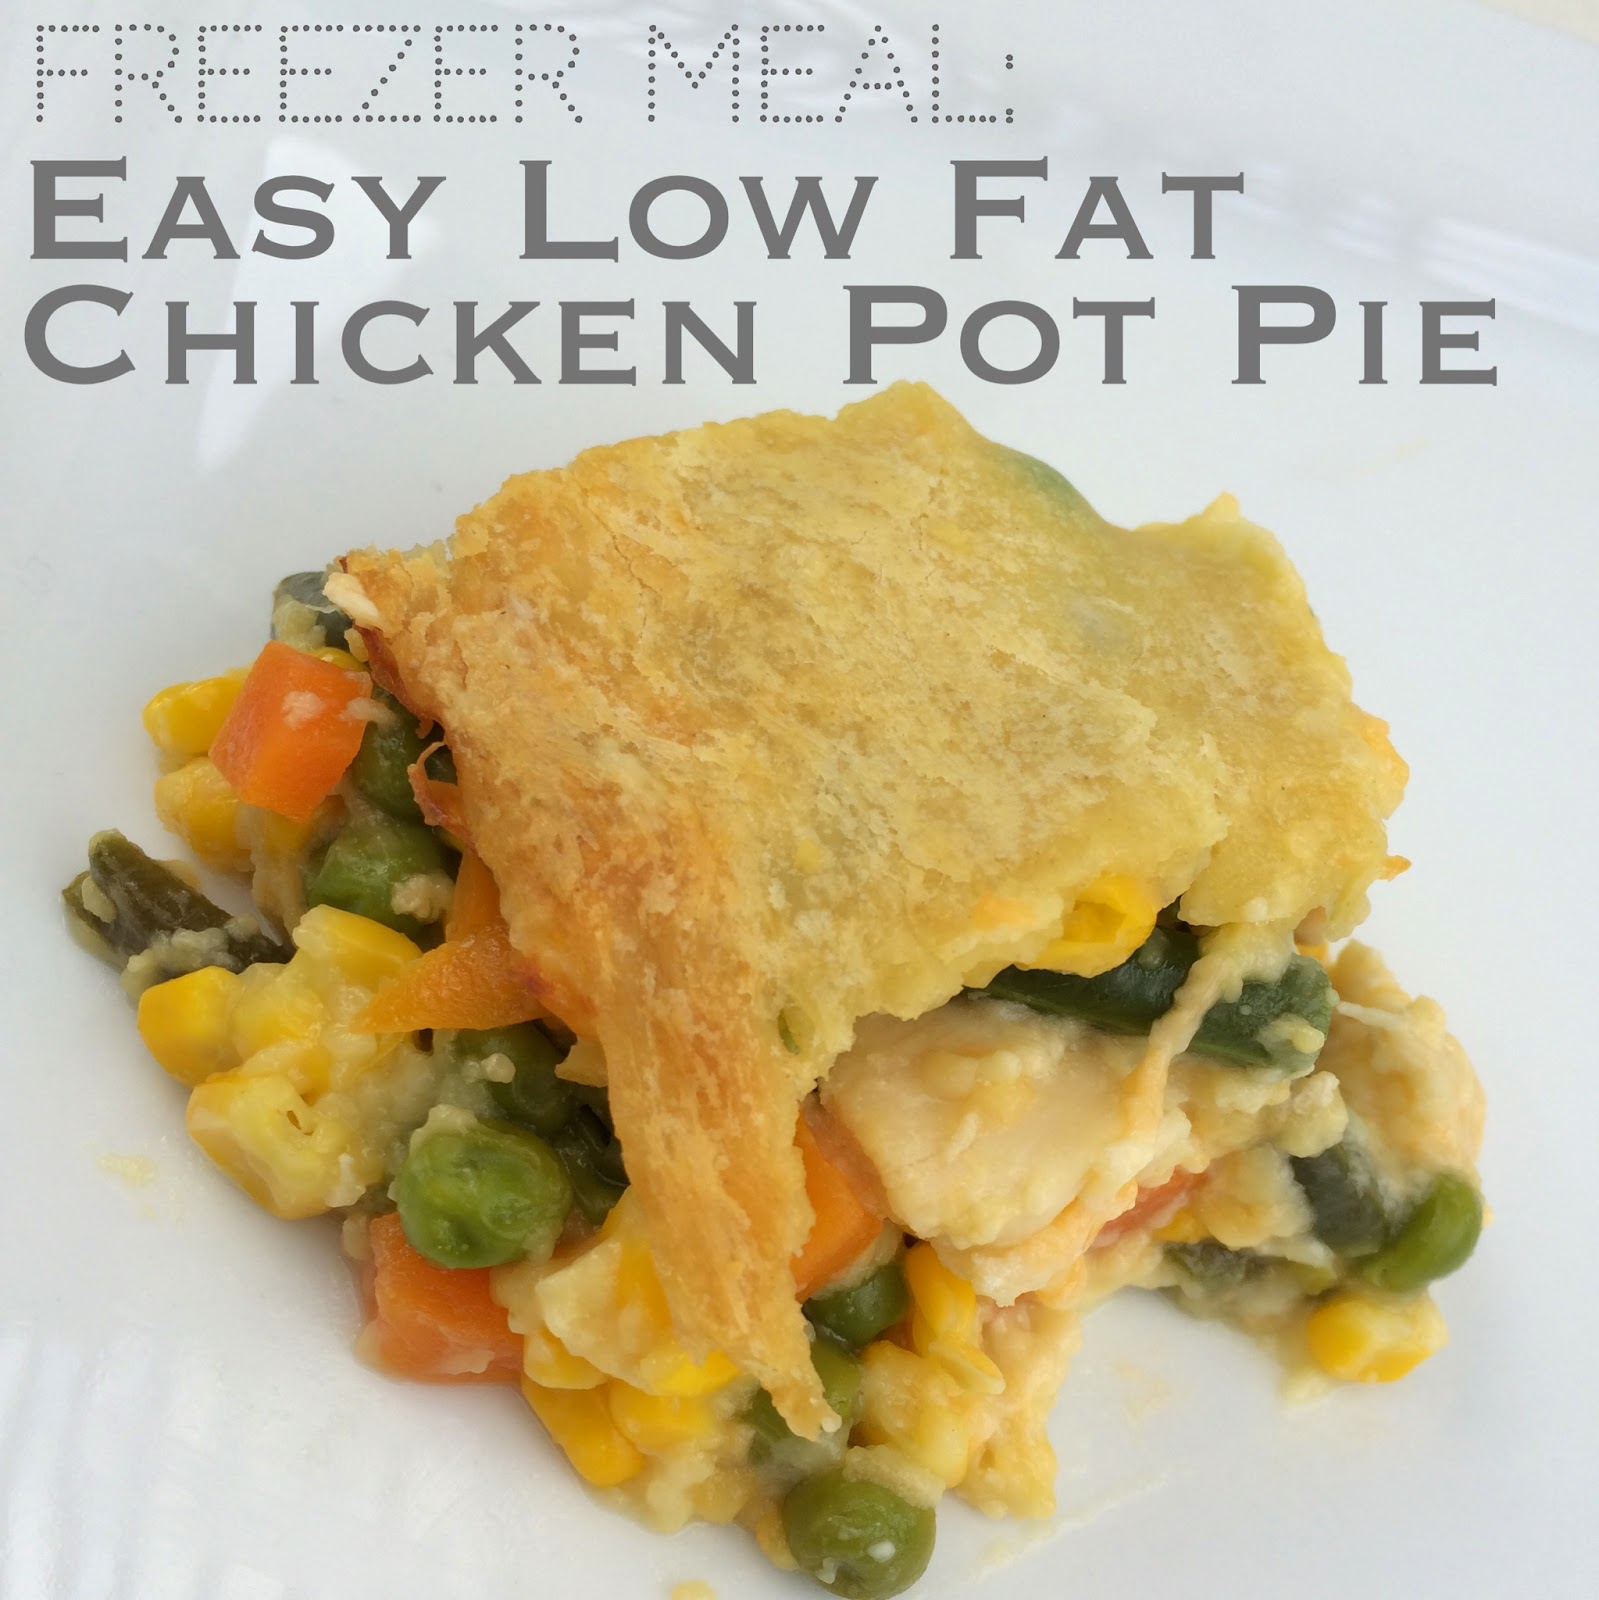 Simply Summer Ann: Freezer Meal: Low Fat Chicken Pot Pie